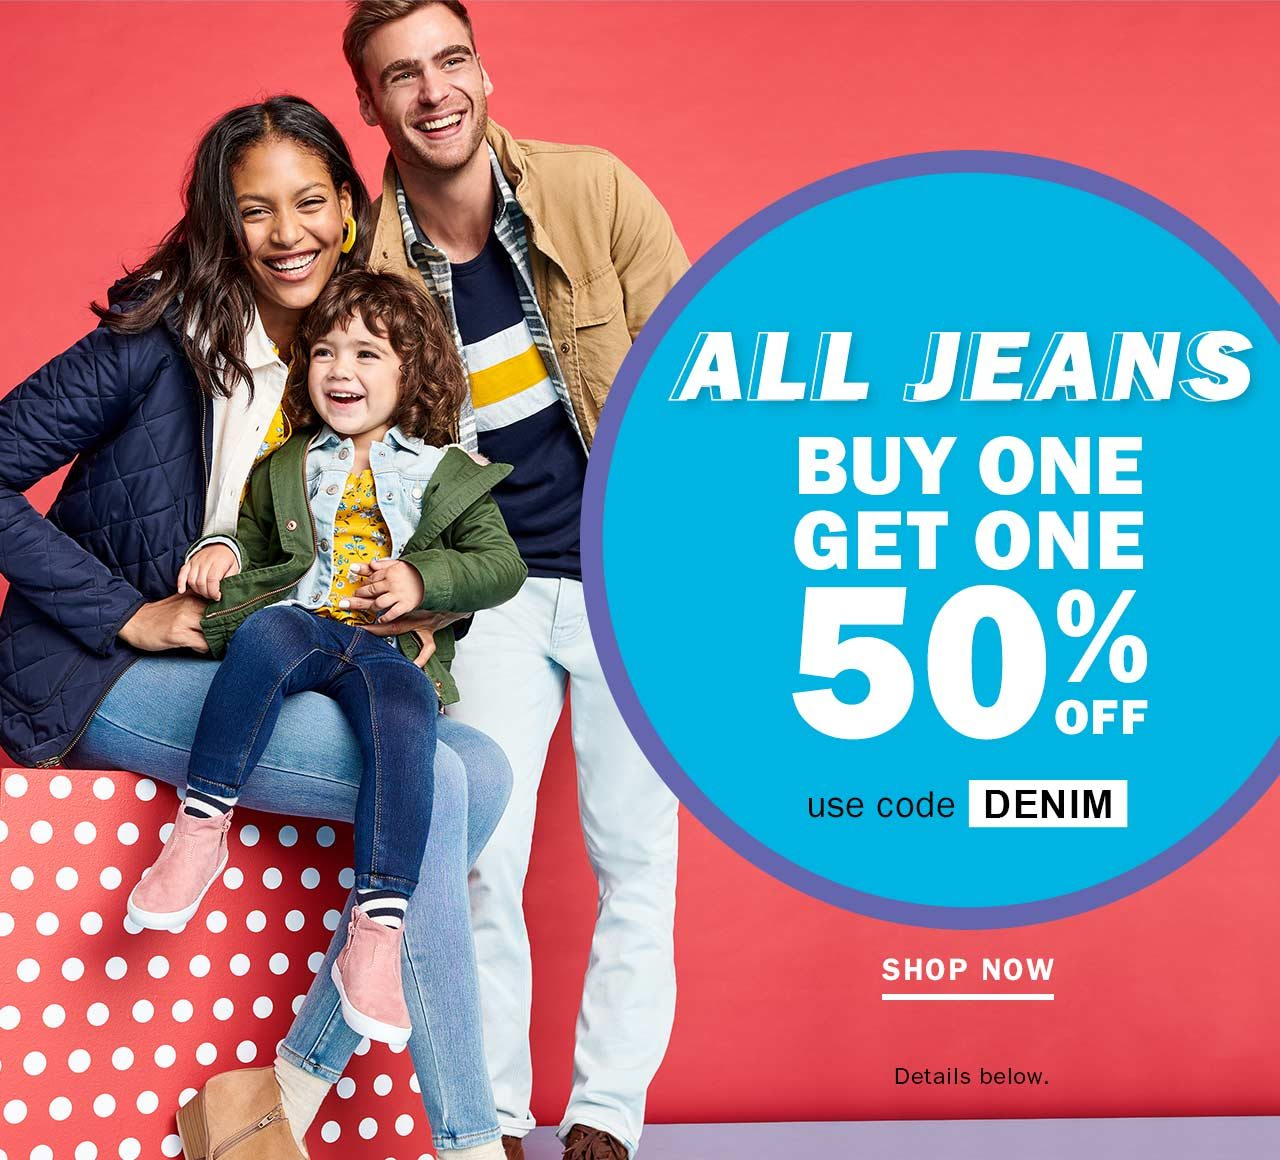 ALL JEANS BUY ONE GET ONE 50% OFF